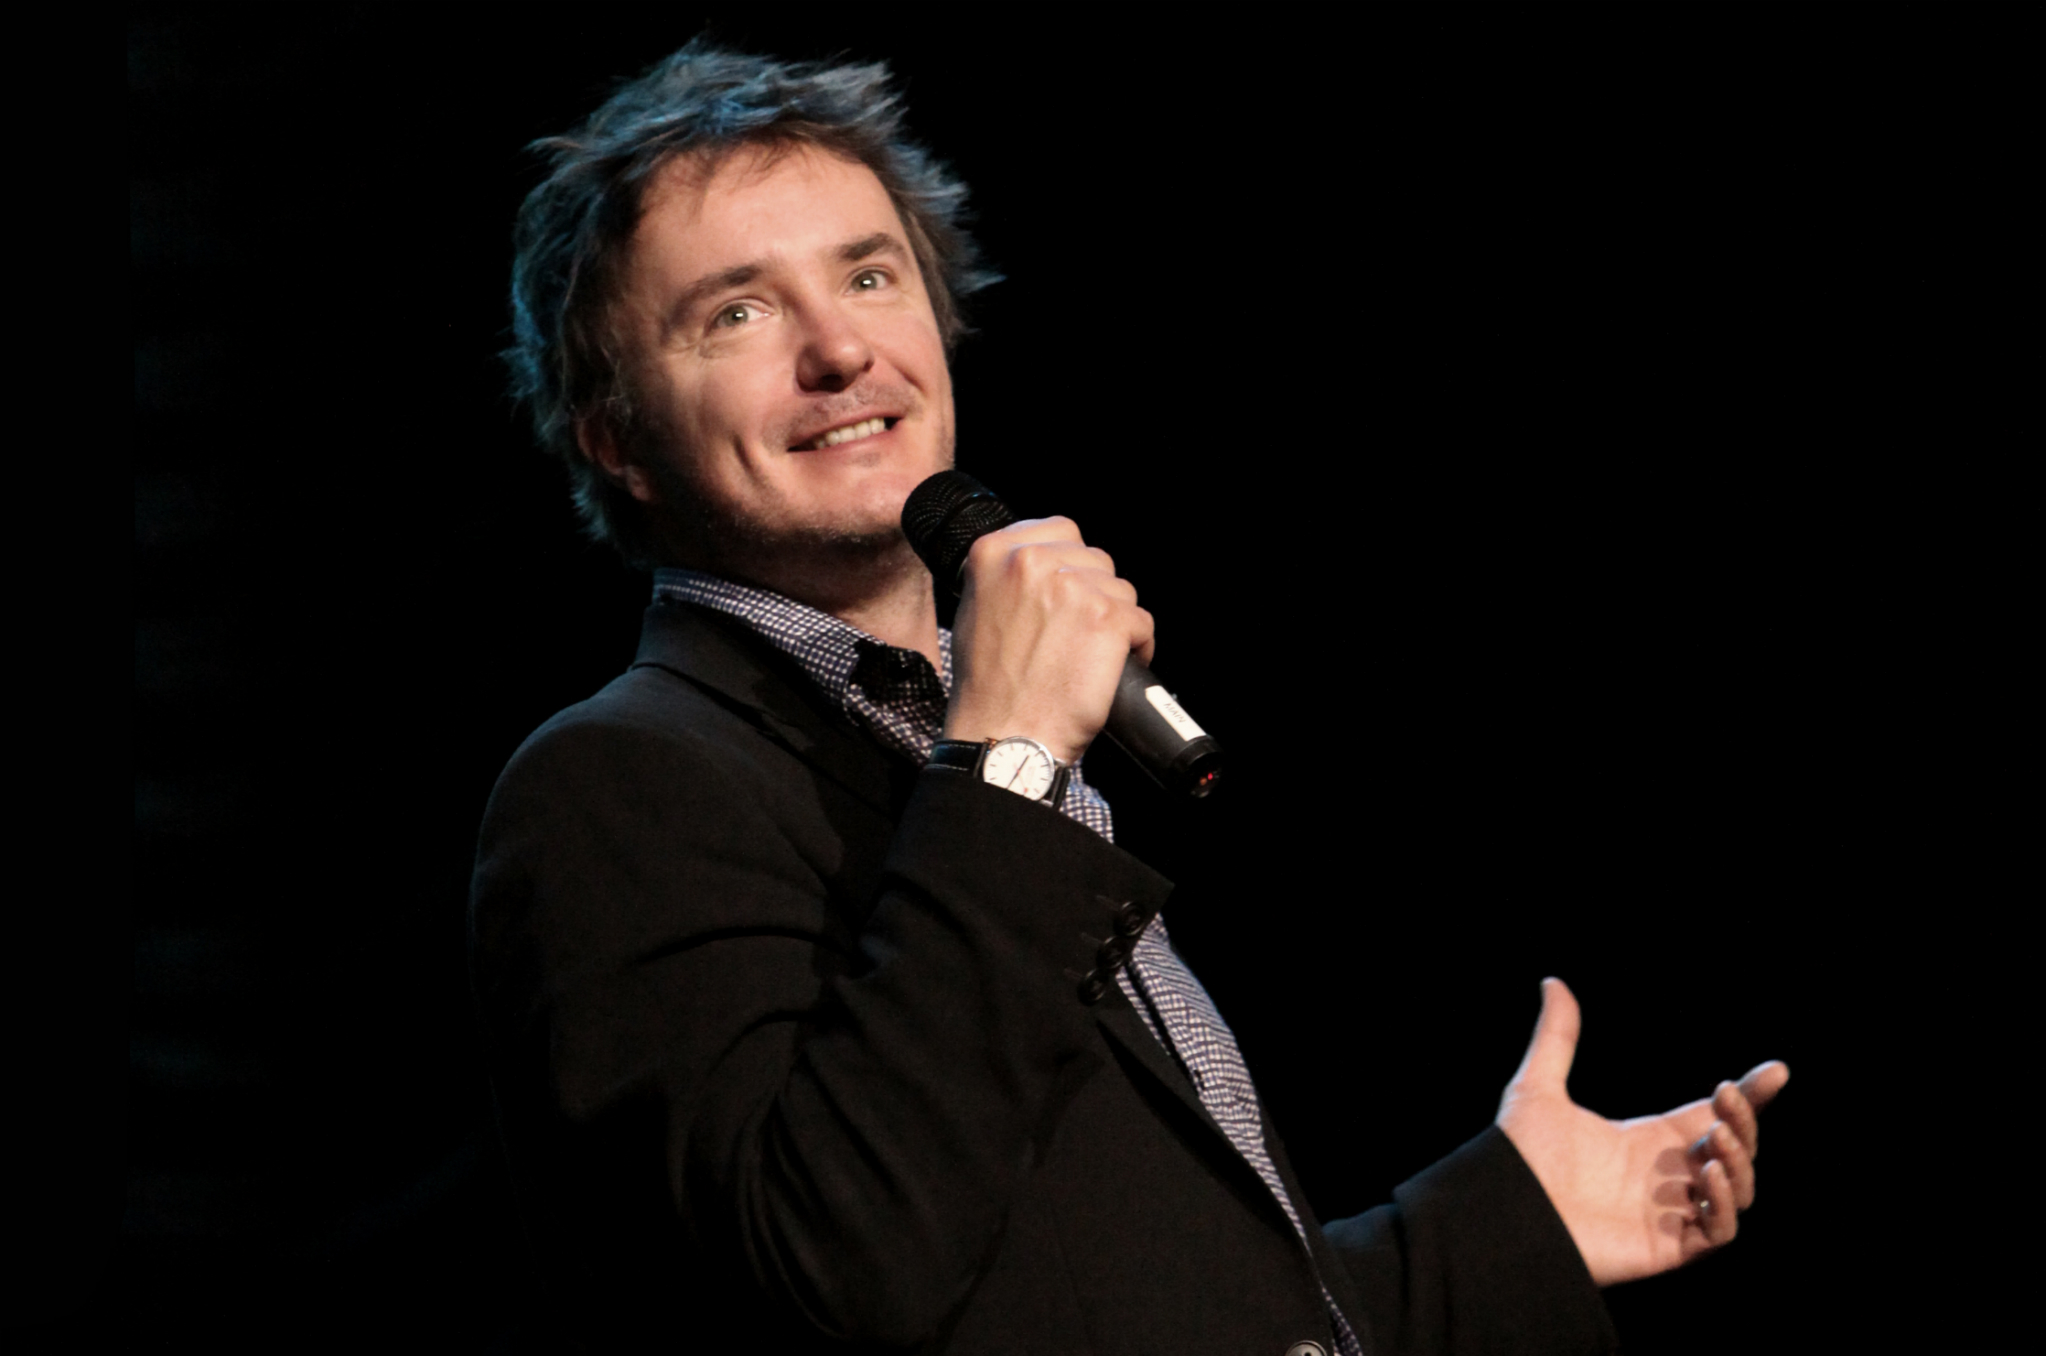 Dylan Moran for new Edinburgh comedy night